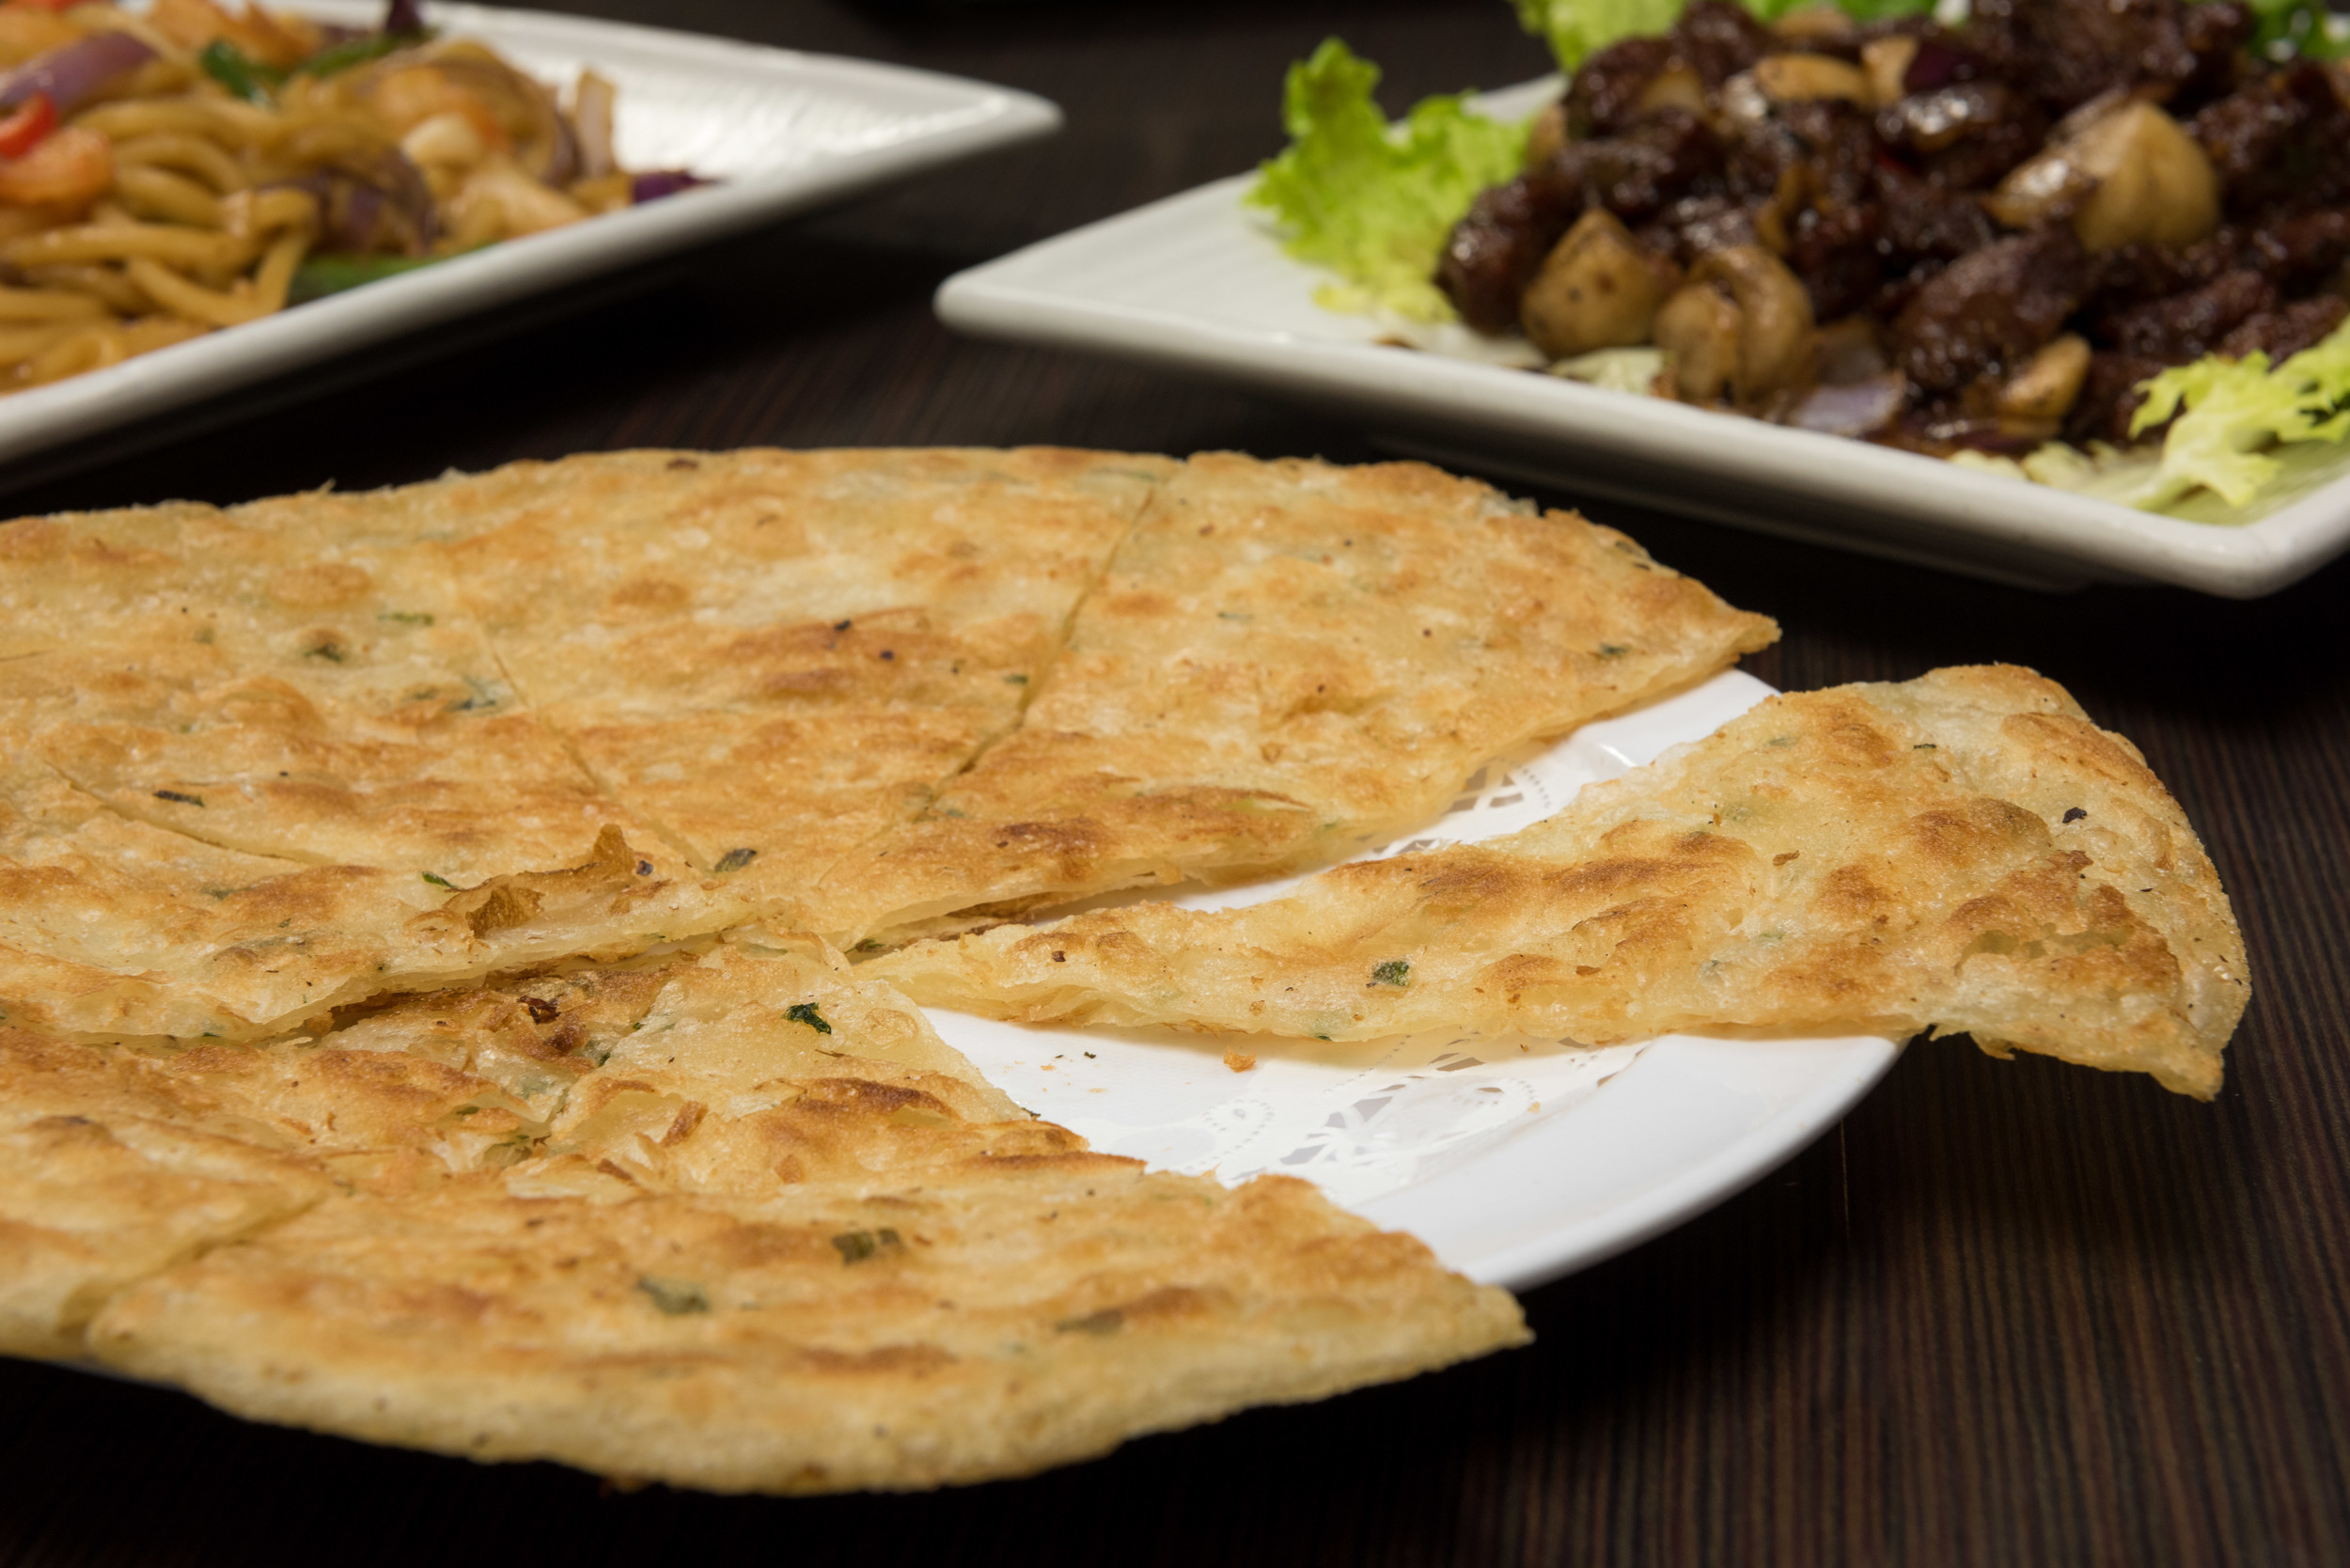 Green Onion Fried Pancake